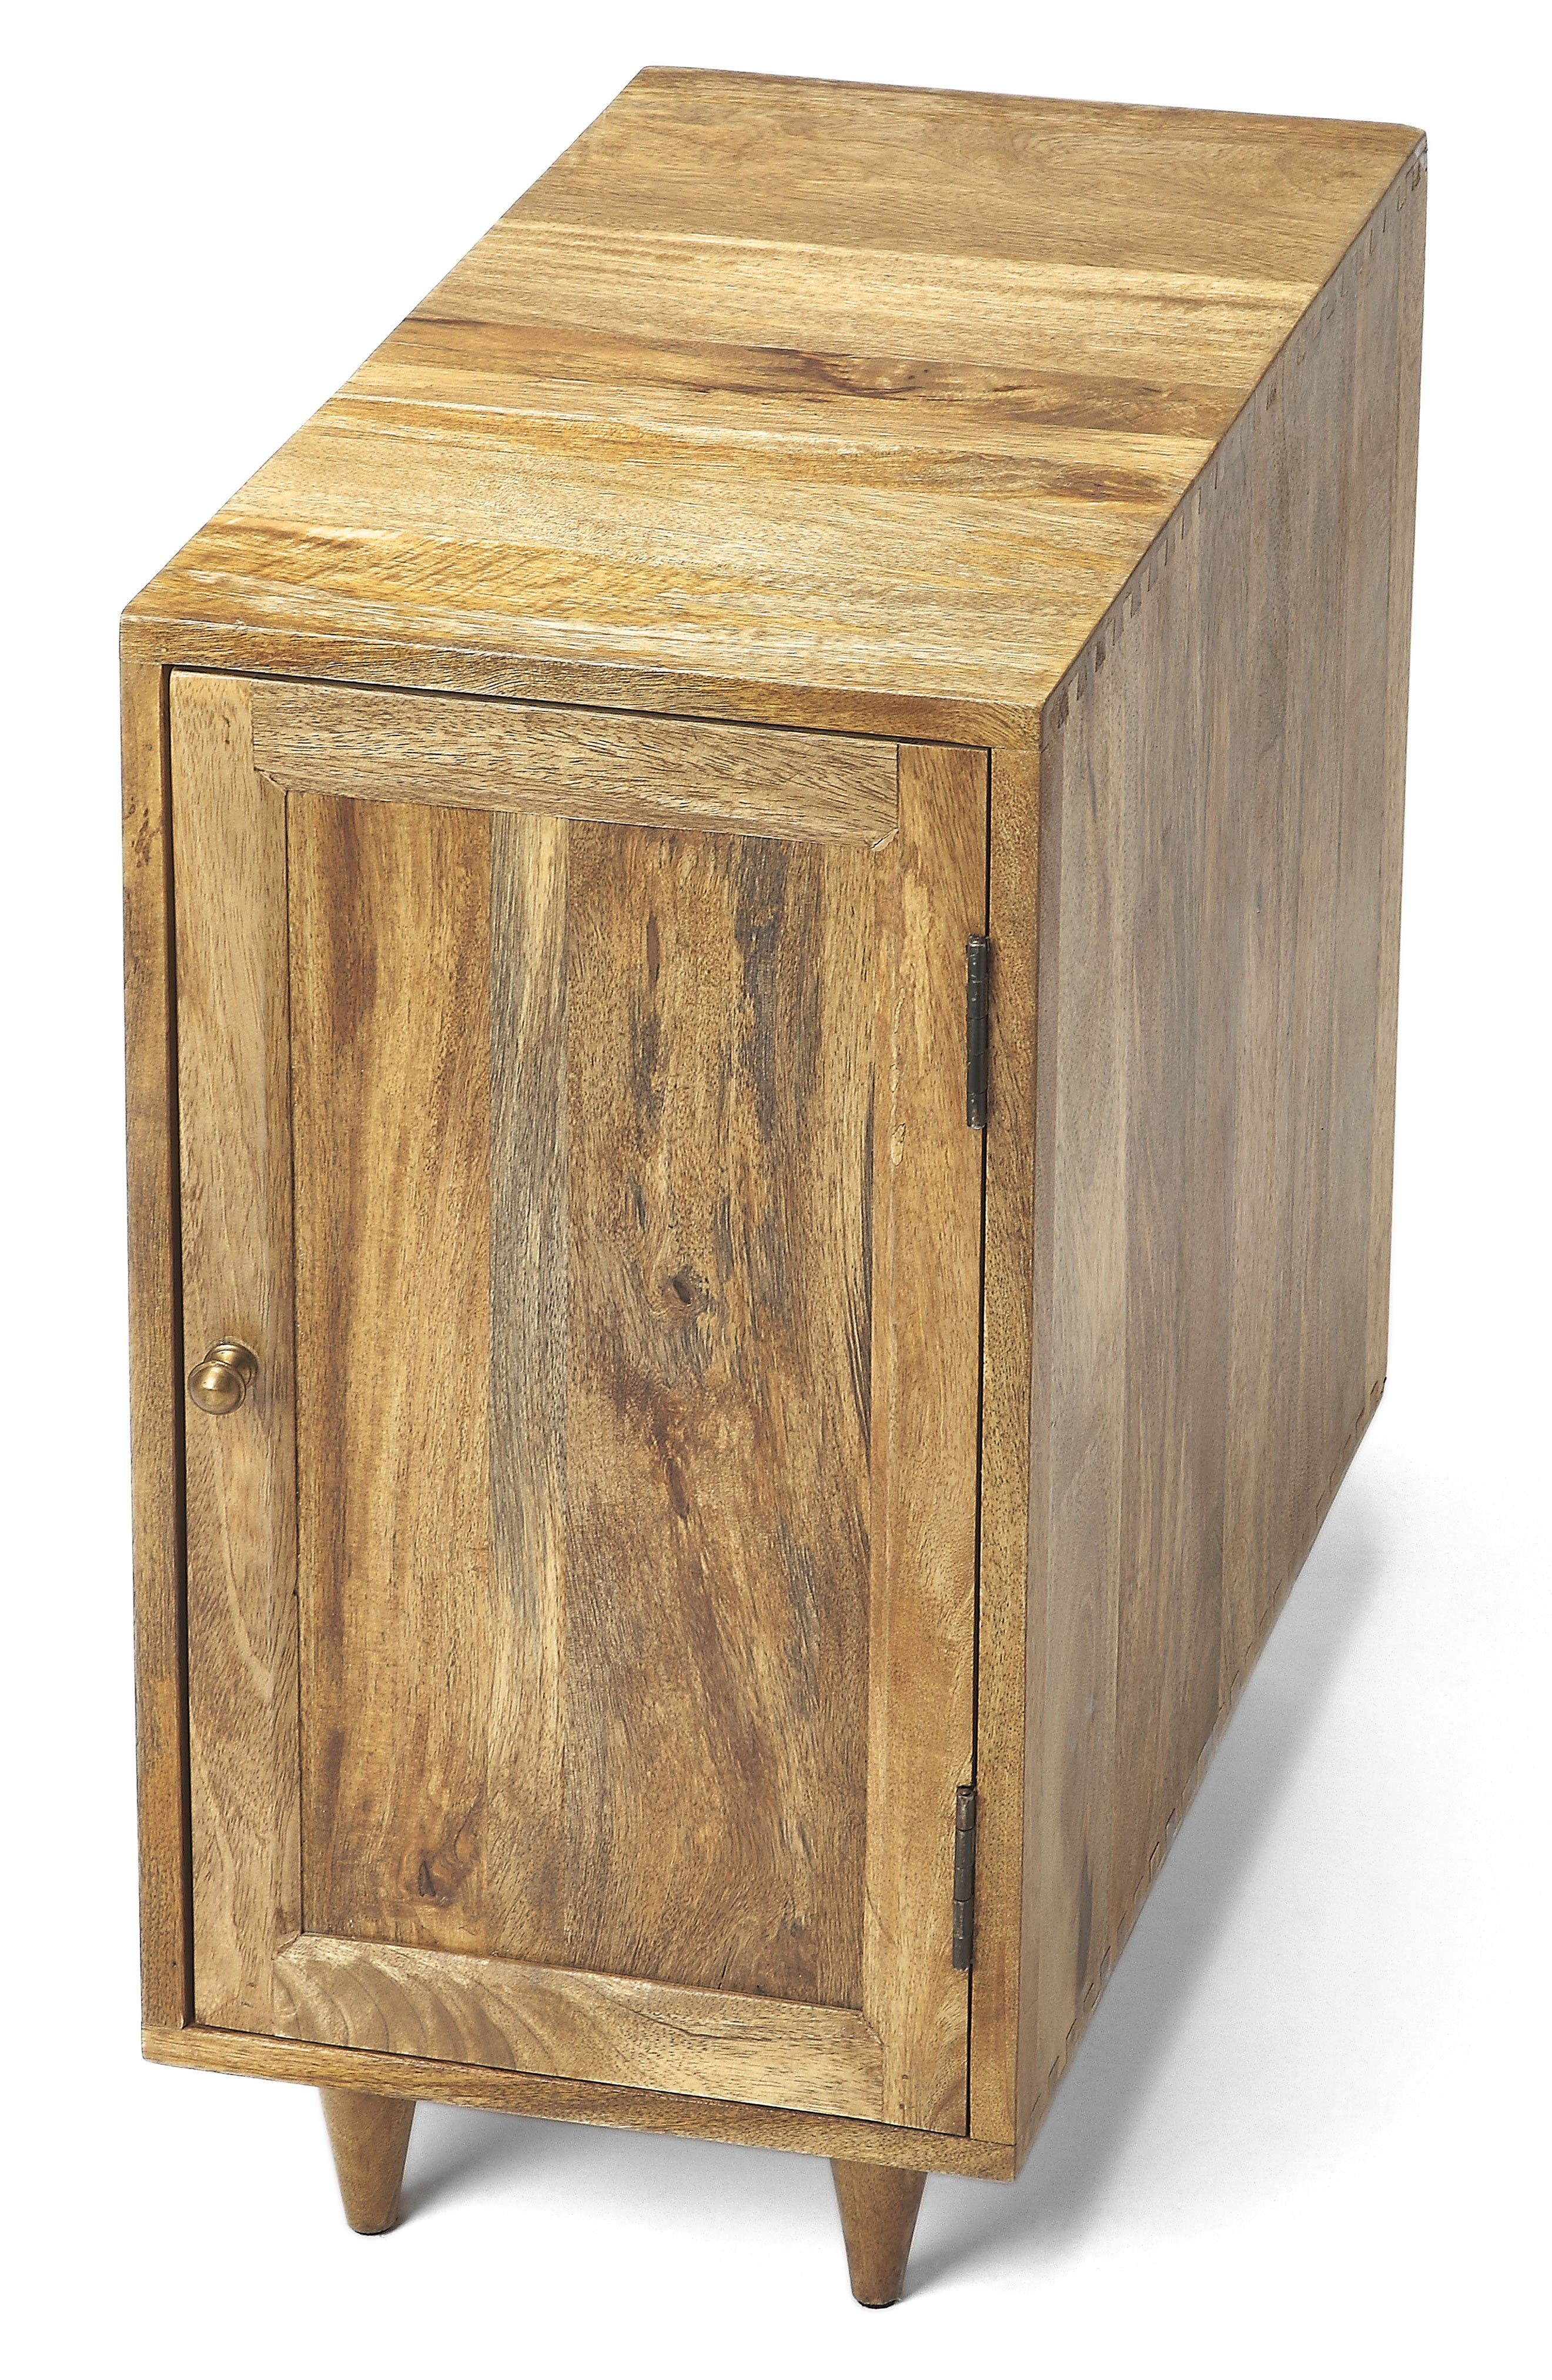 Main Image - Butler Chairside Chest